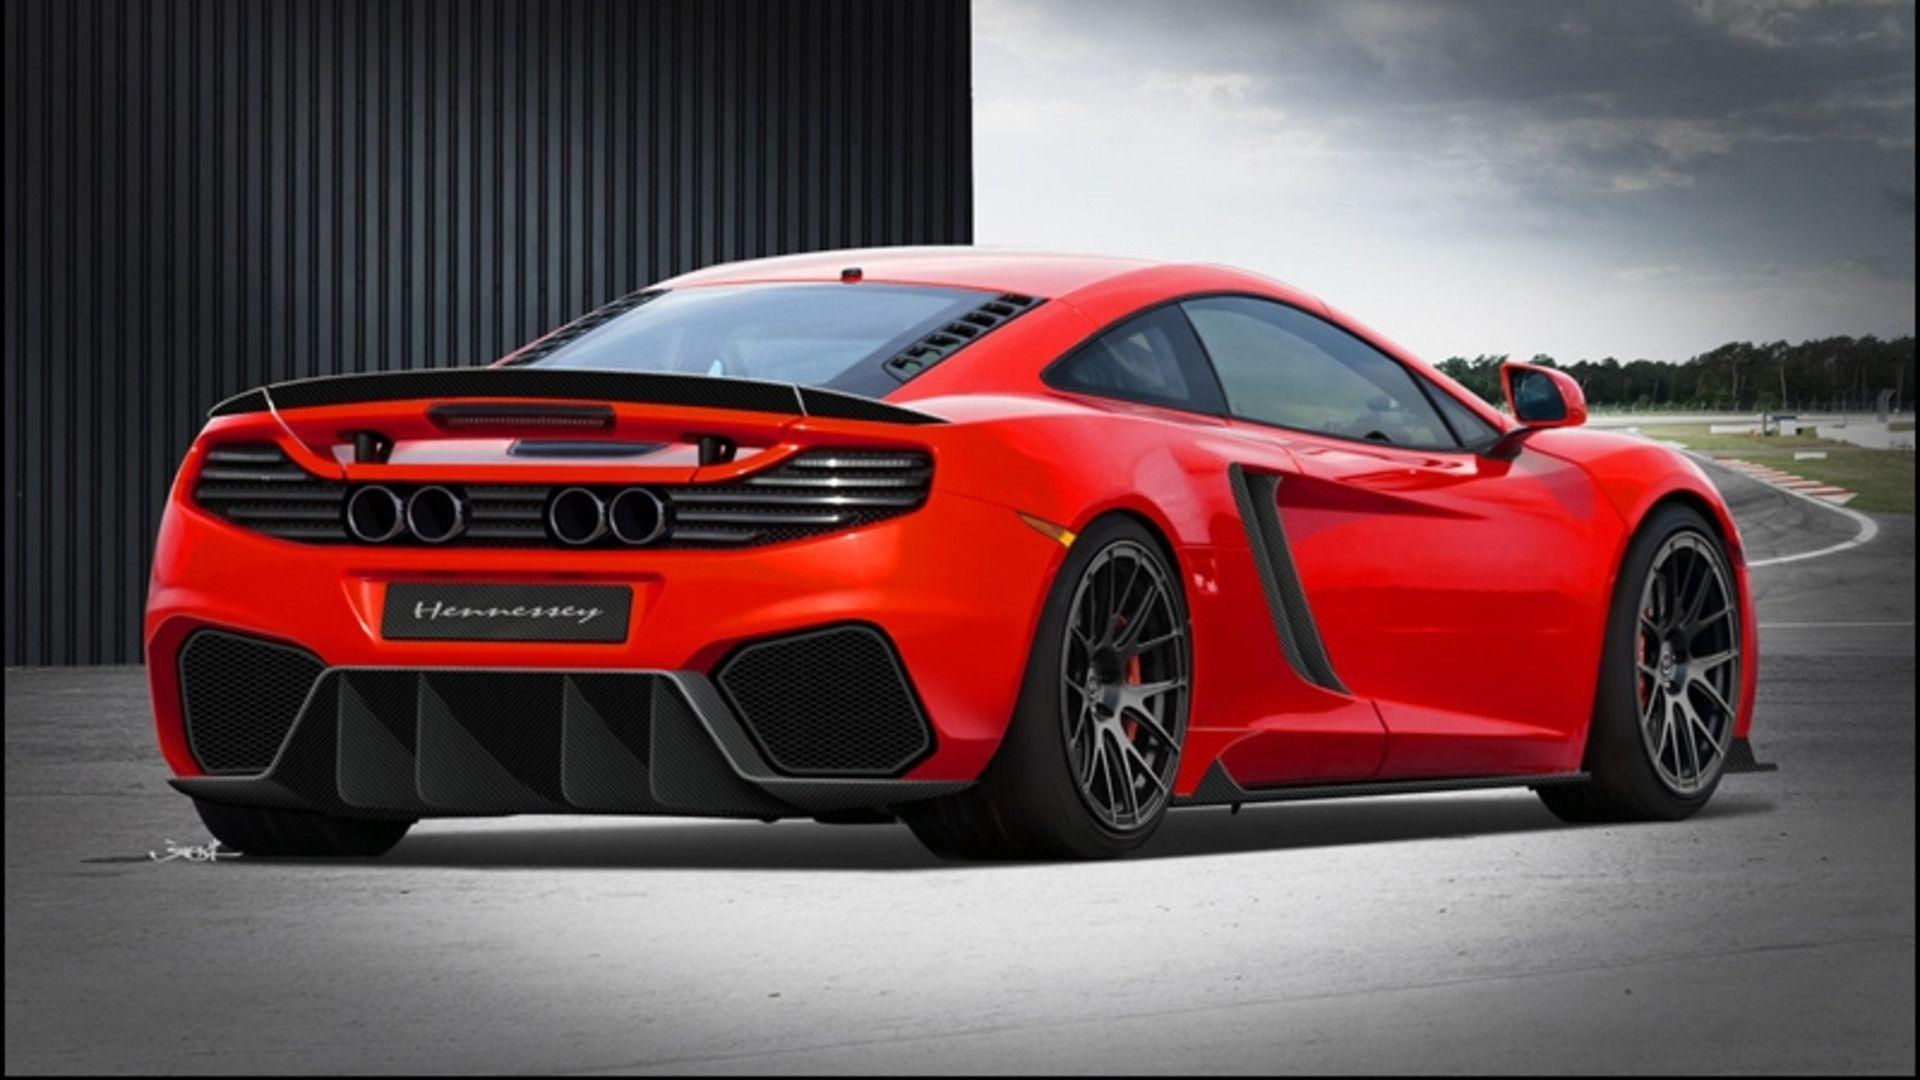 Red McLaren Cars Wallpapers Picture 2890 Wallpapers